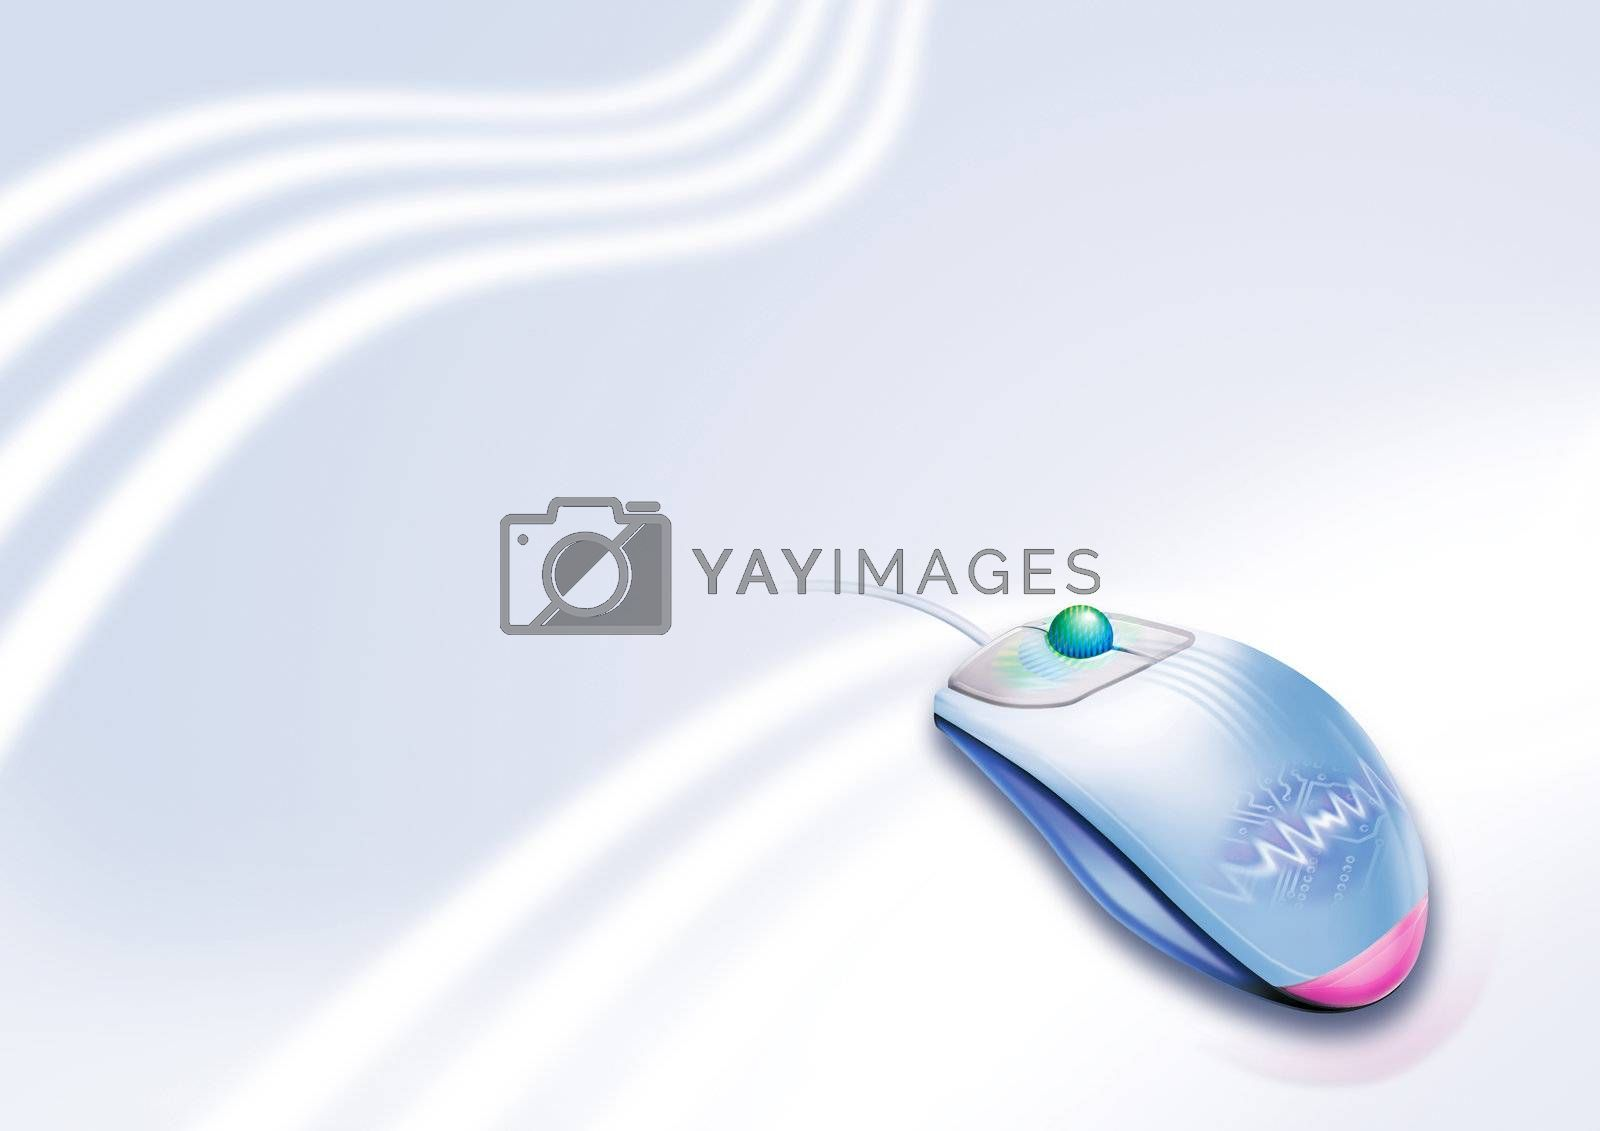 digital computer mouse illustration with light background